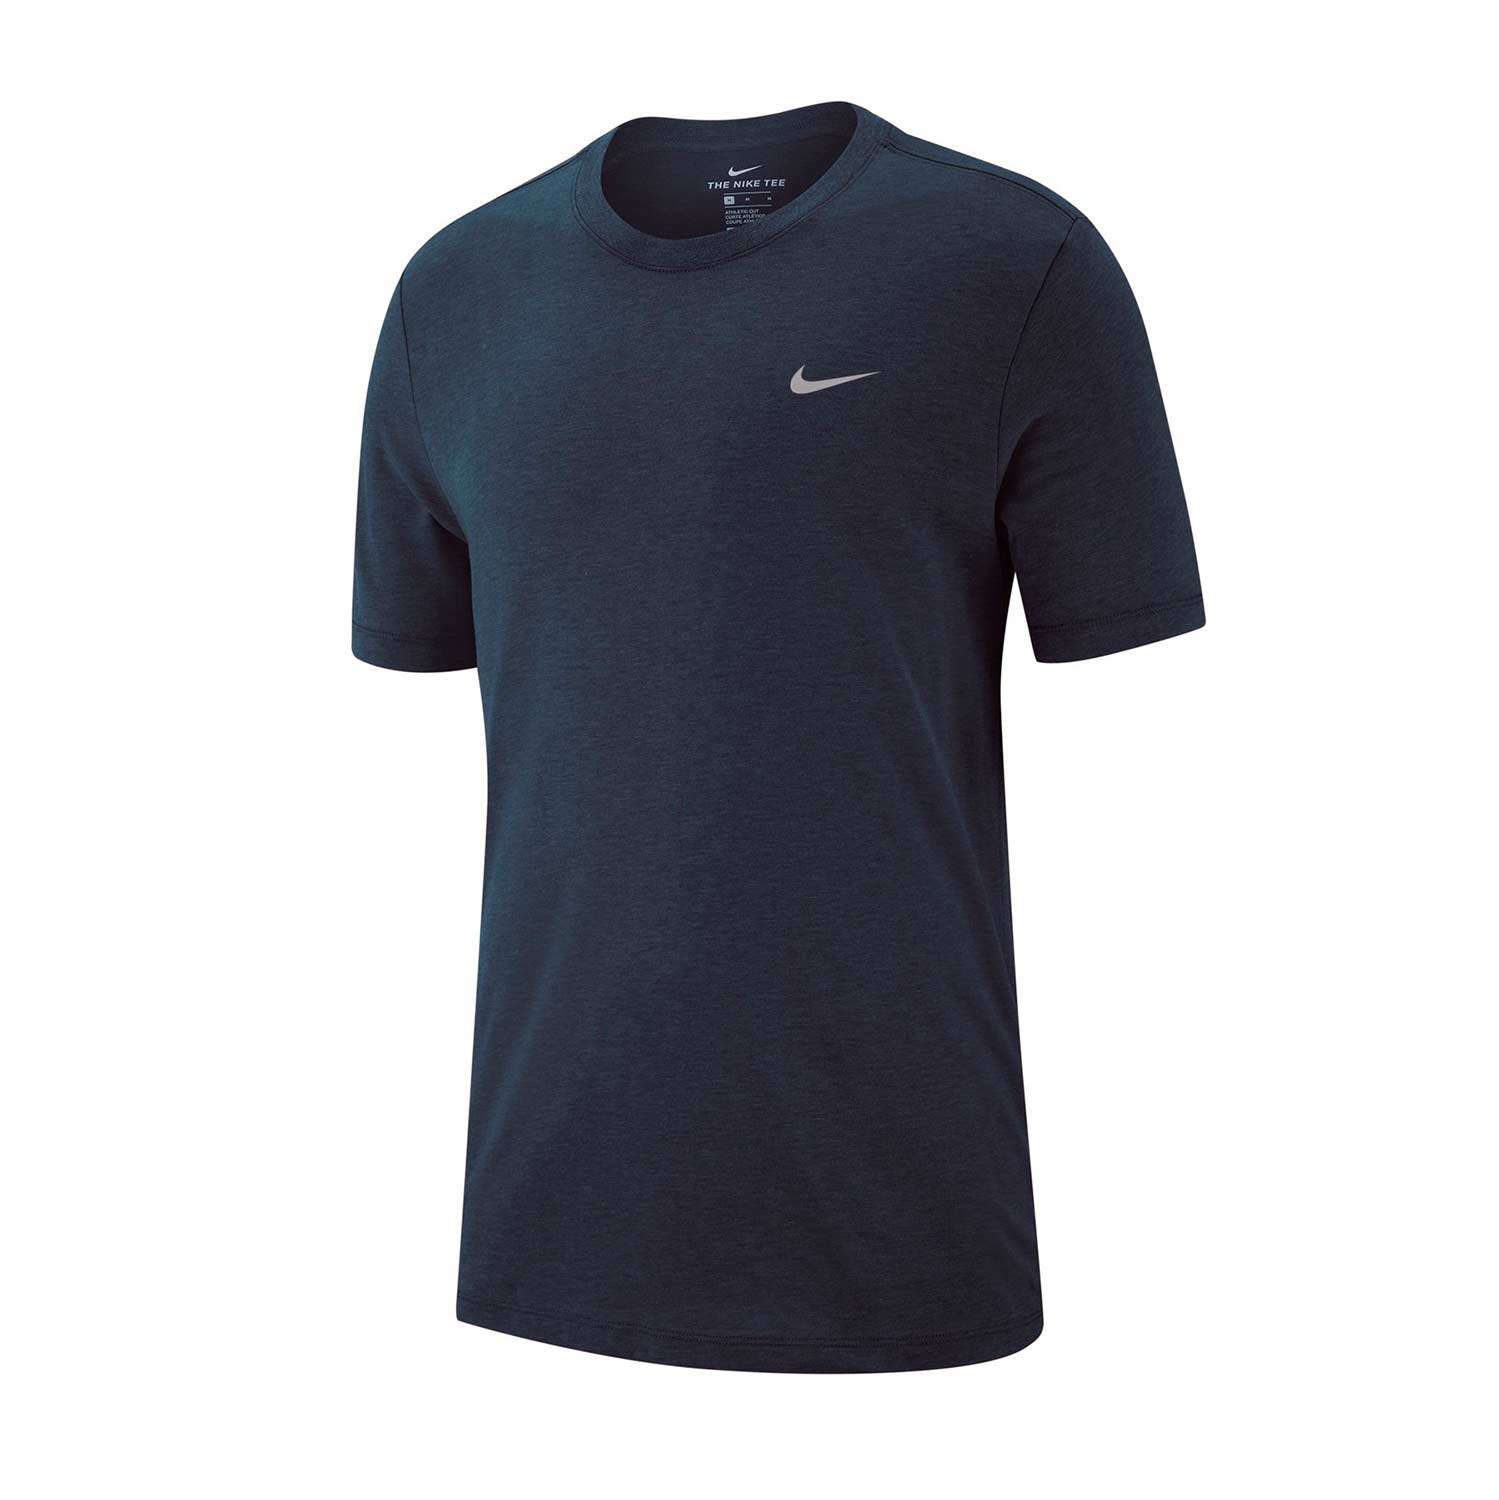 Nike Dri-FIT Crew Neck Training T-Shirt